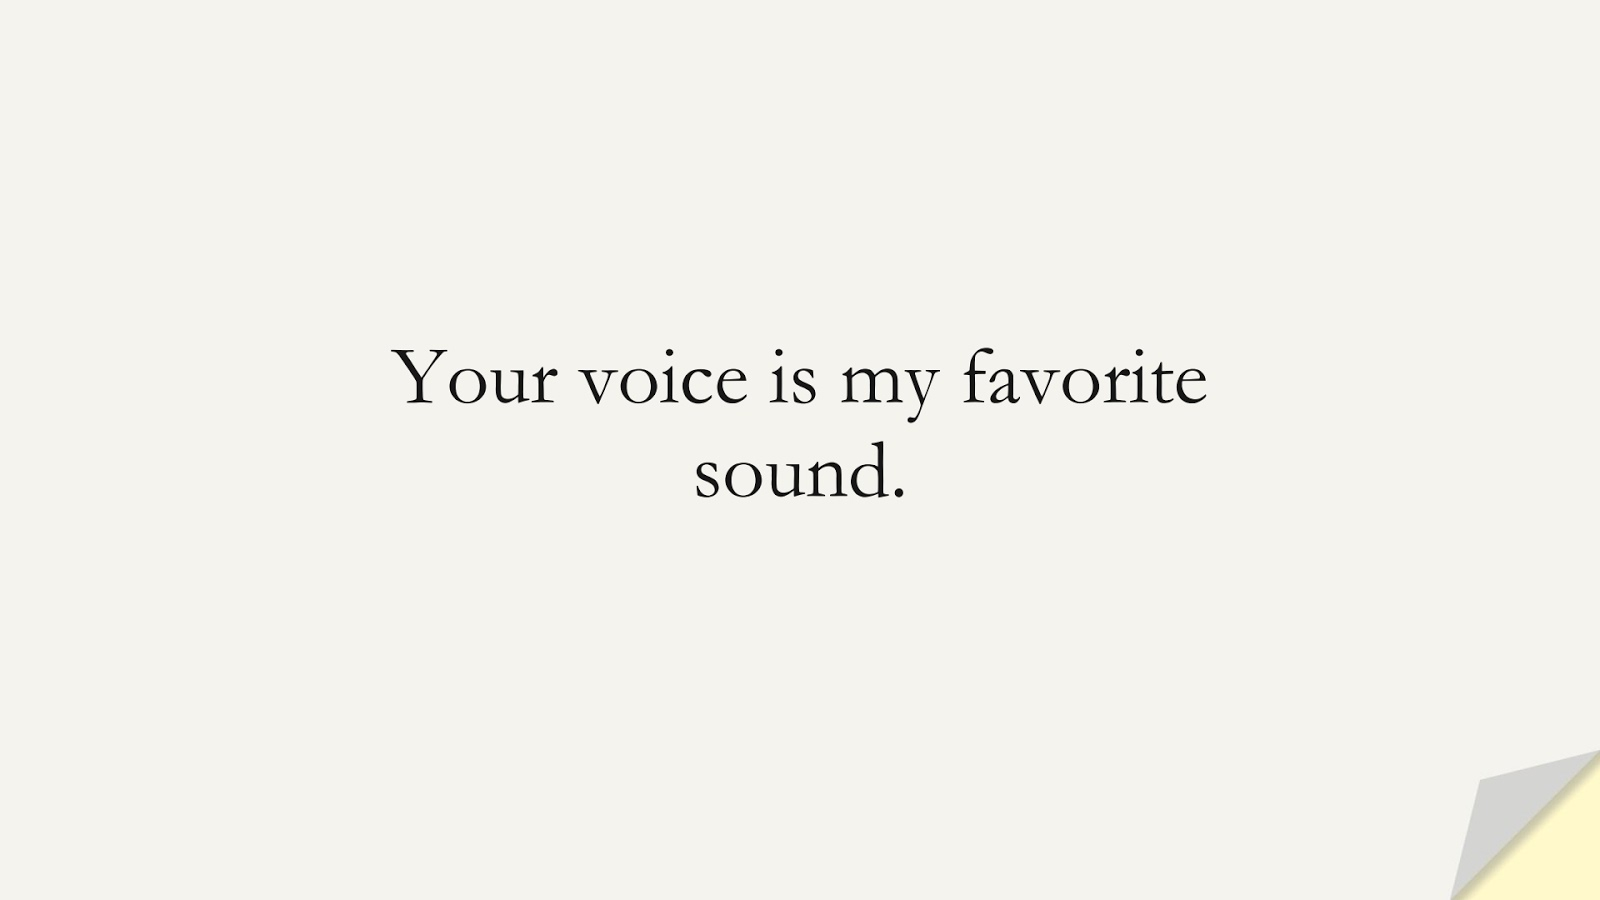 Your voice is my favorite sound.FALSE